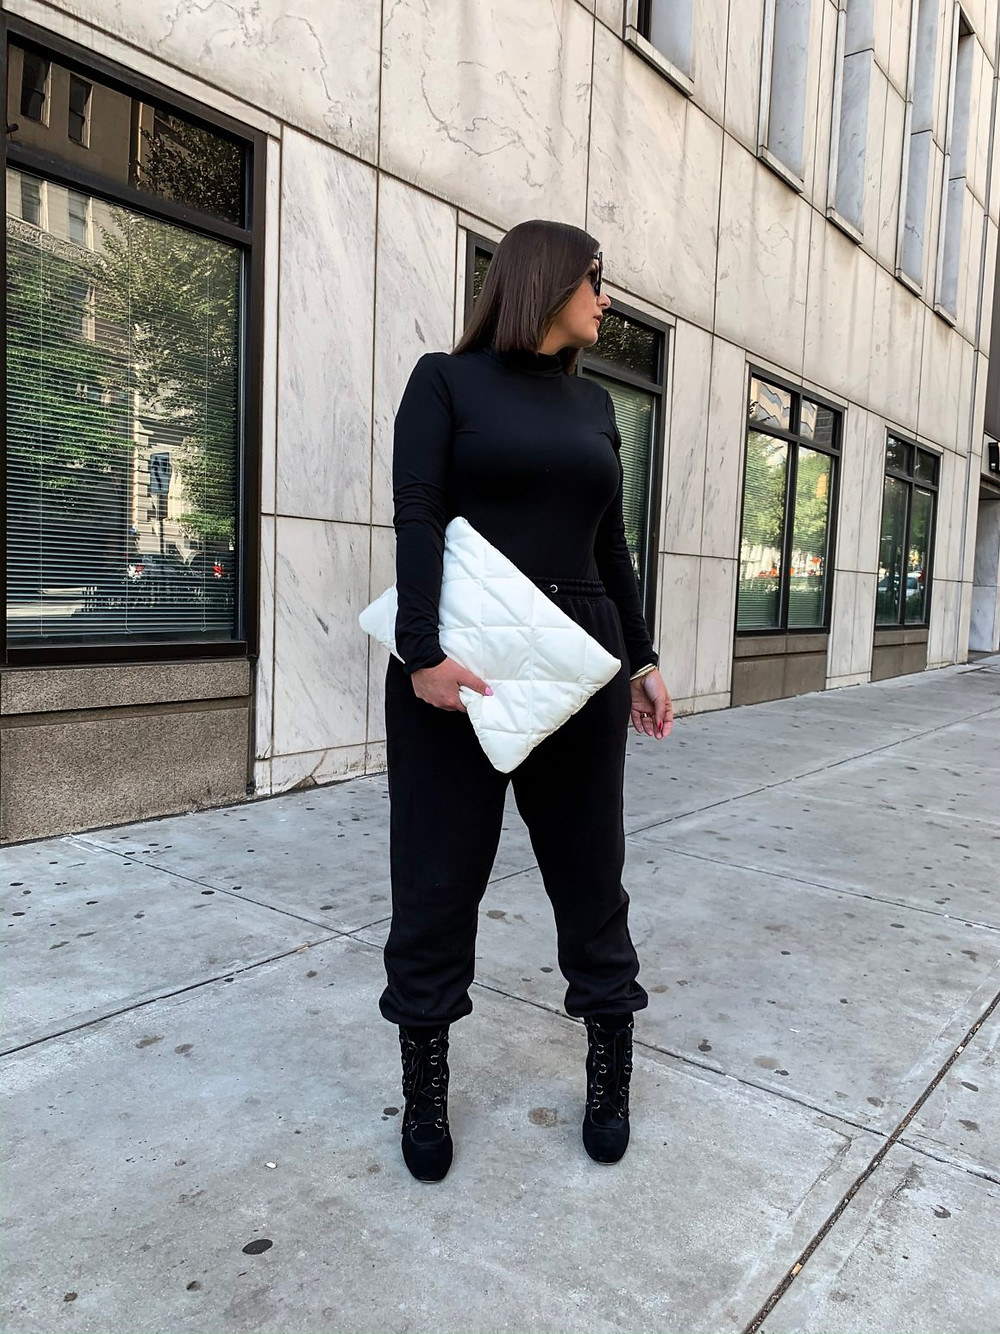 A girl with brunette bob standing on concrete sidewalk wearing a black sweatsuit with black boots while holding a white quilted clutch bag